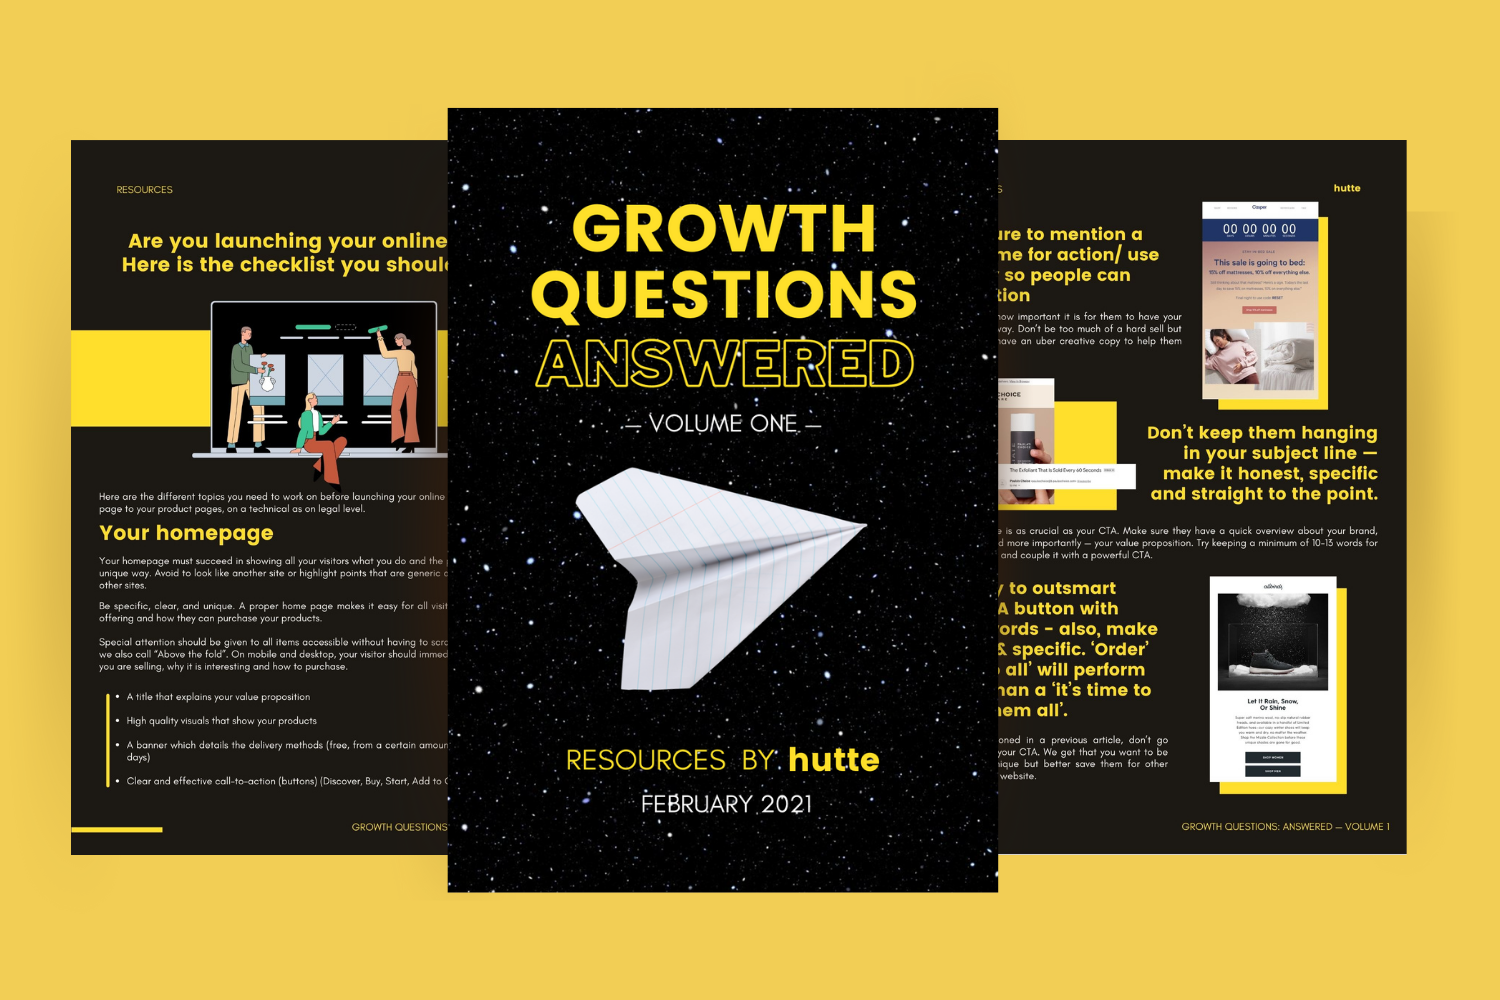 Vos Questions Growth Marketing: Les Réponses — Volume 1